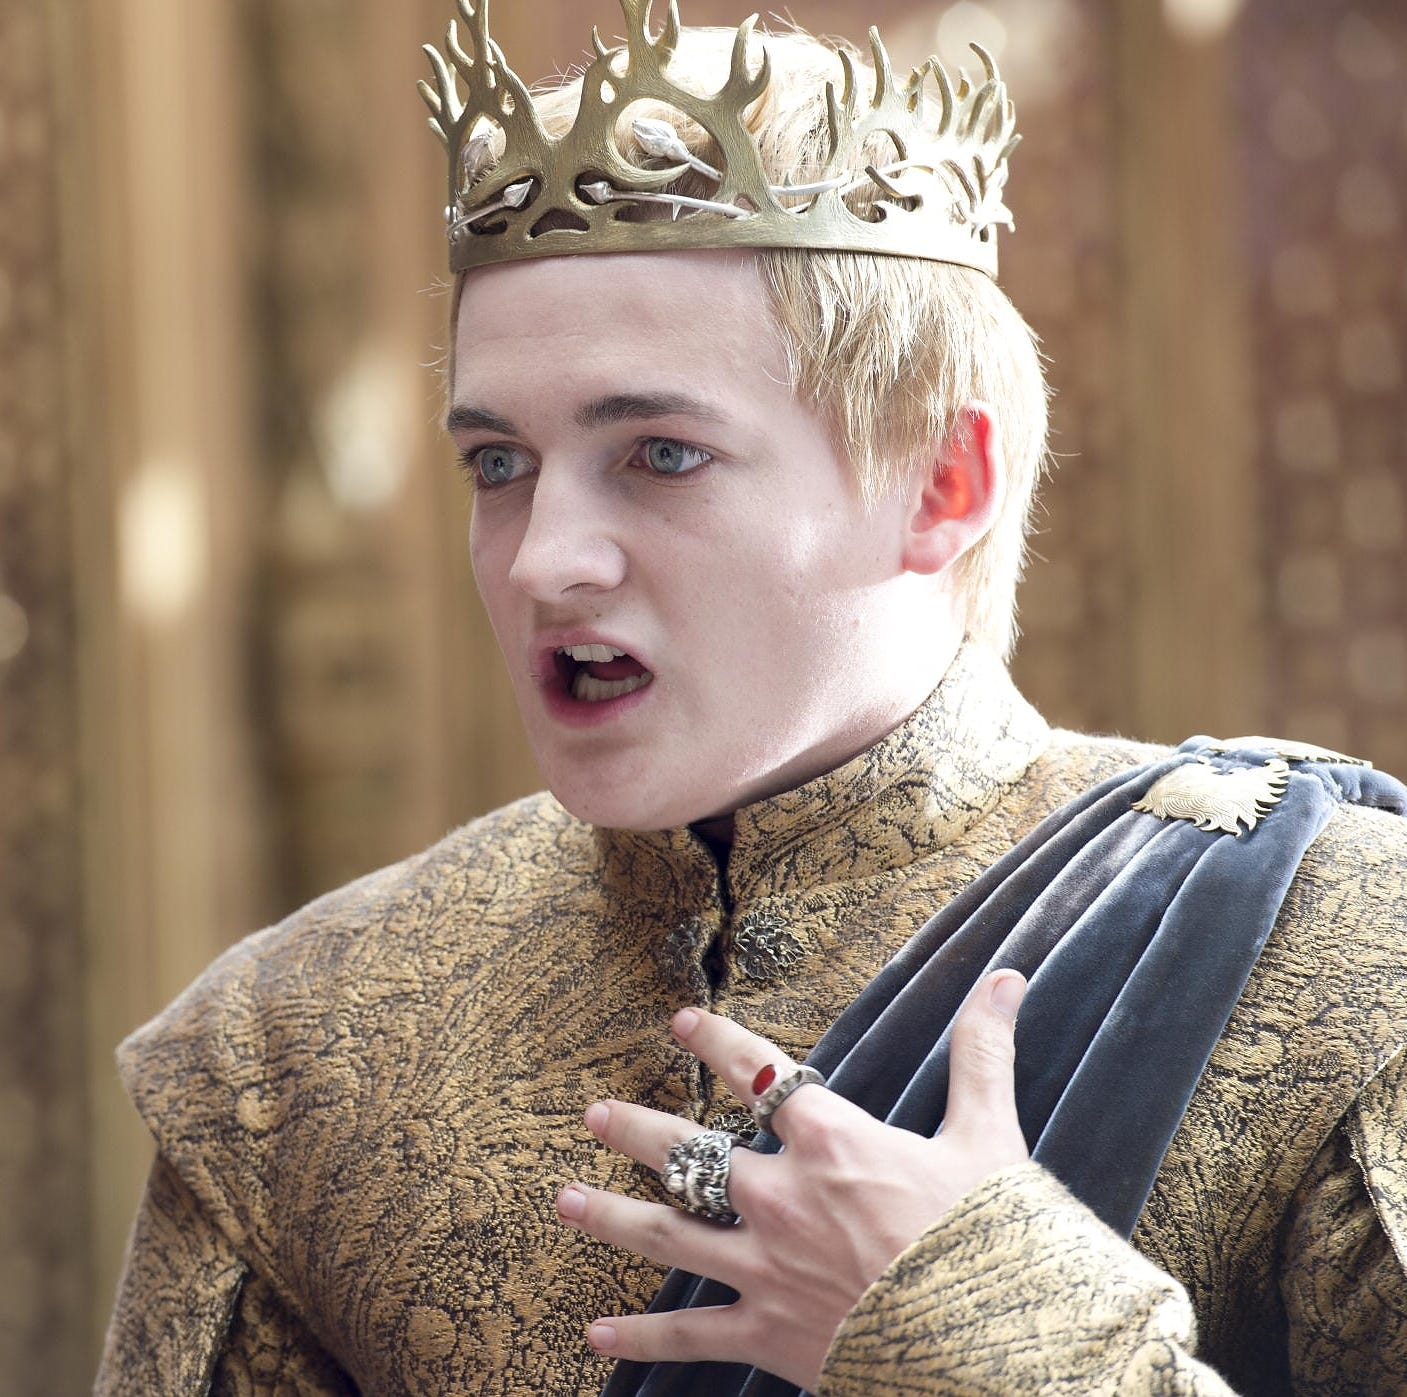 GAME OF THRONES episode 32 (season 4, episode 2): Jack Gleeson. photo: Macall B. Polay/courtesy of HBO [Via MerlinFTP Drop]